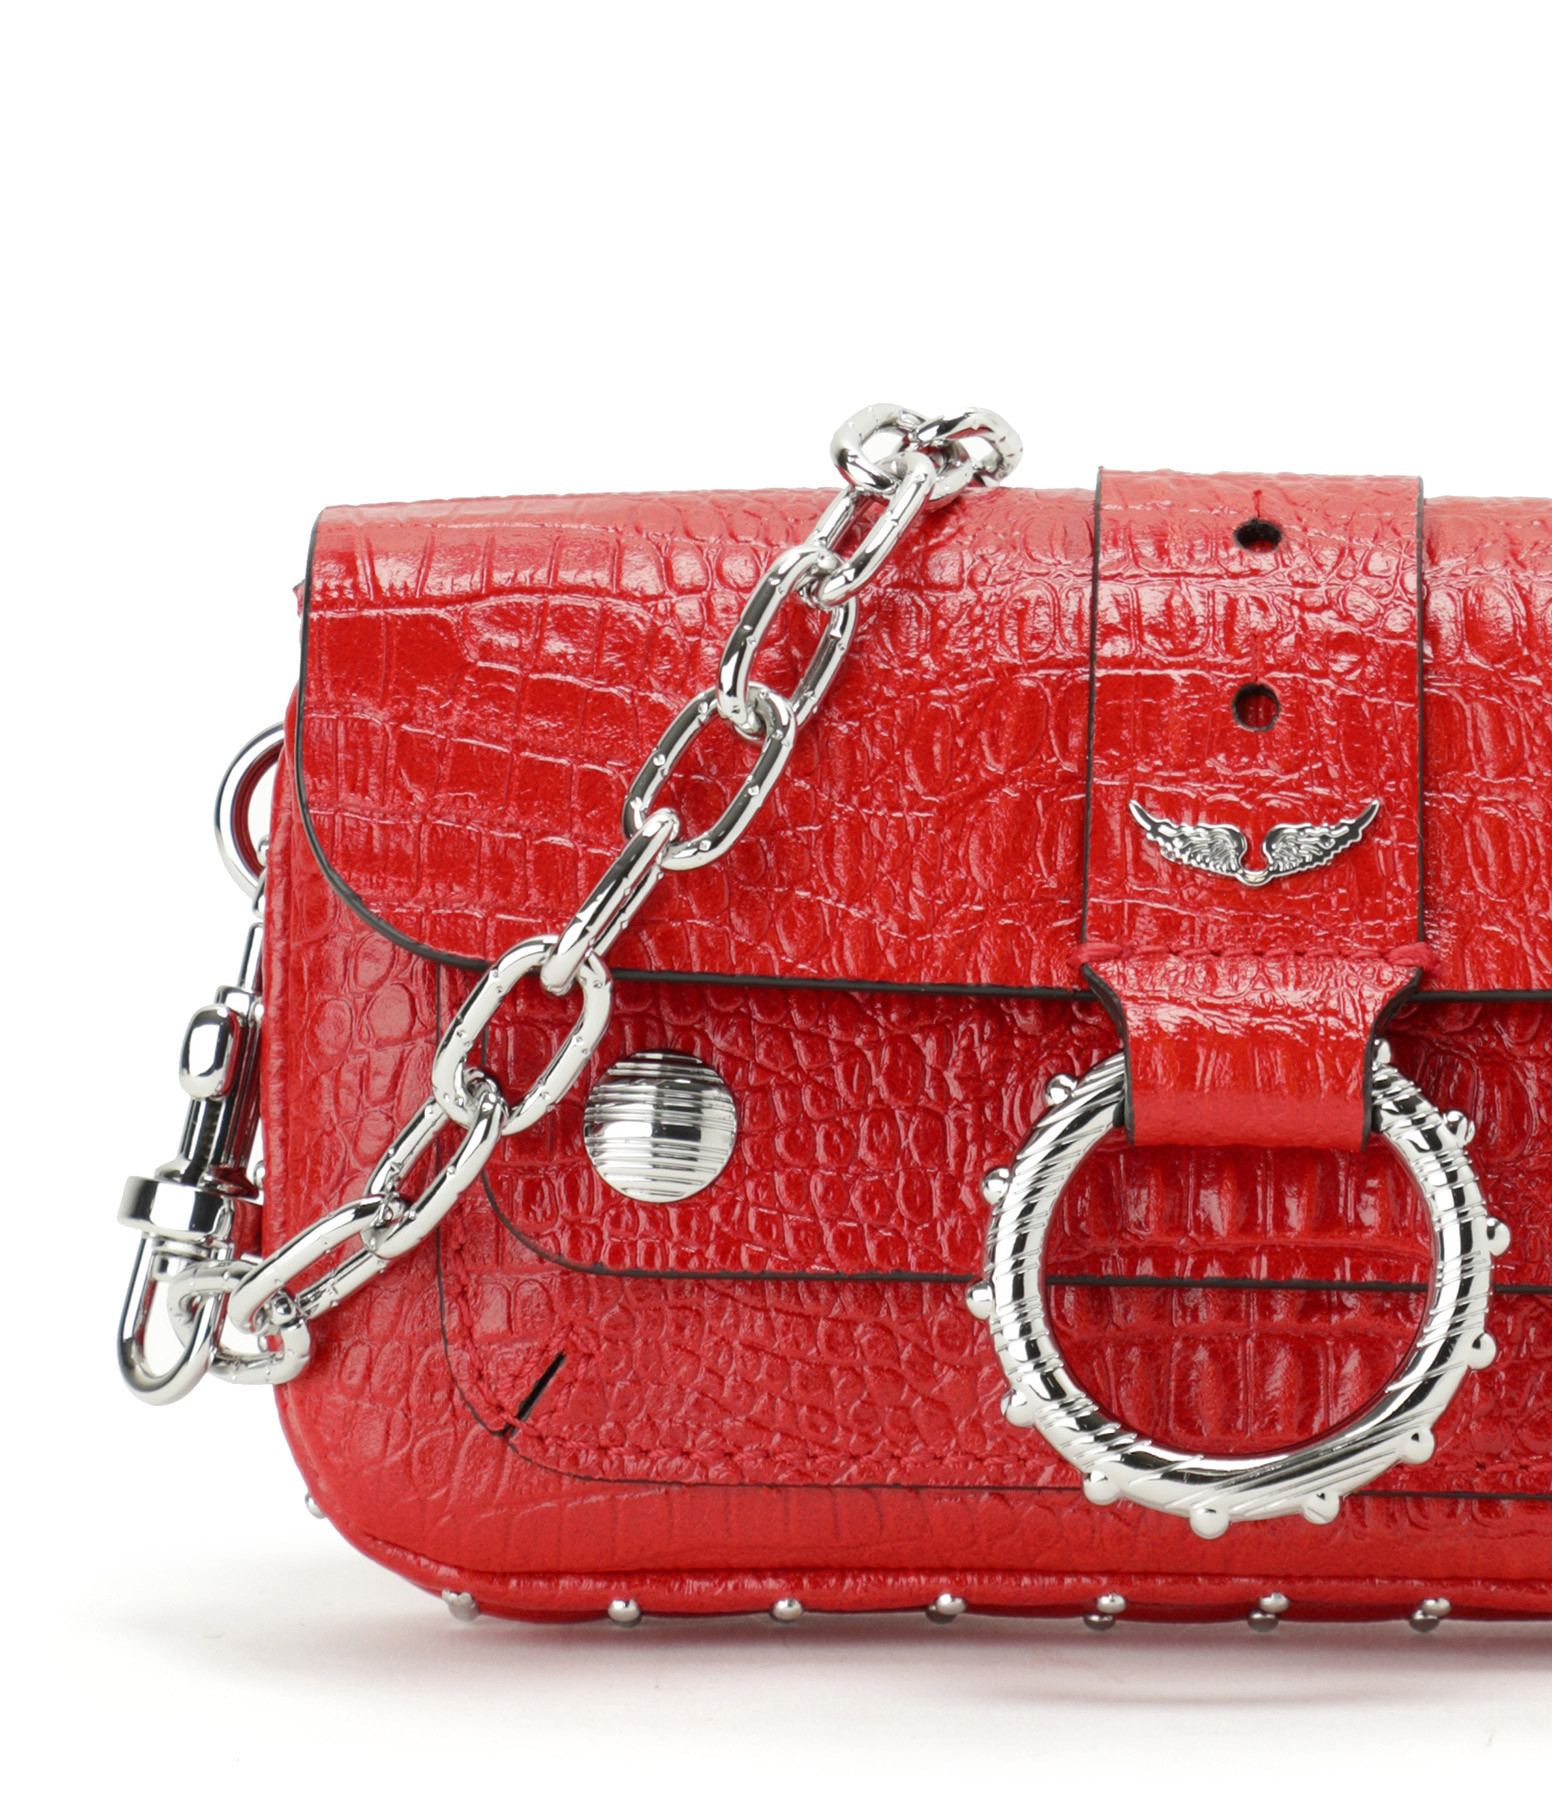 ZADIG & VOLTAIRE - Sac Cuir Rouge, Collection Kate Moss